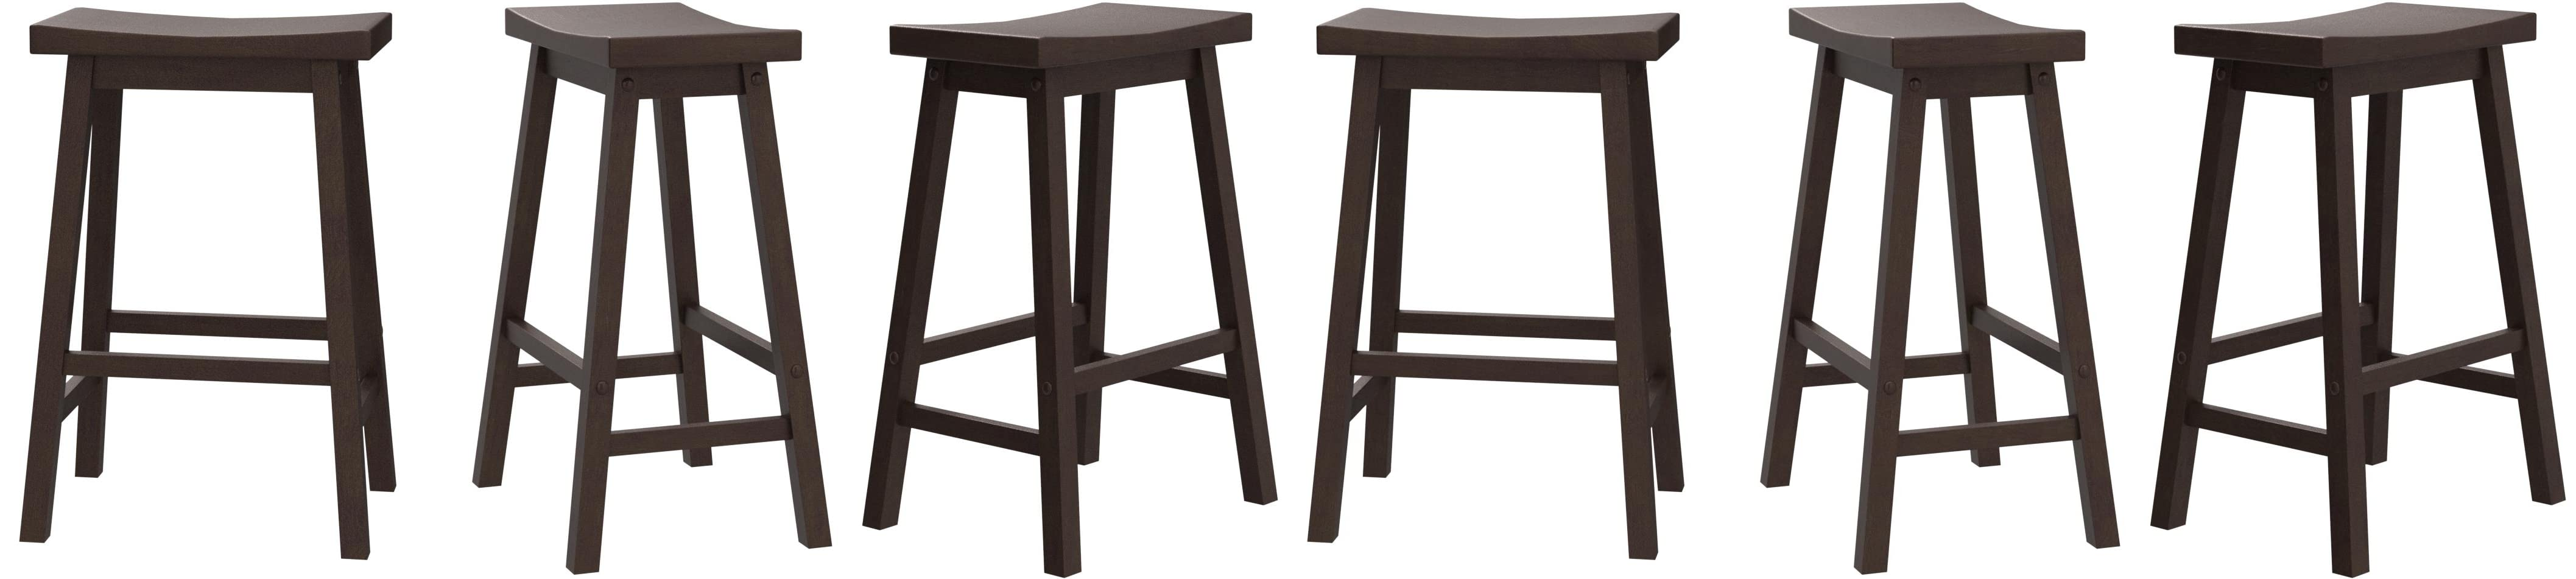 Pj Wood Saddle Seat Counter Stool 24 Inch Walnut Amazon Co Uk Kitchen Home